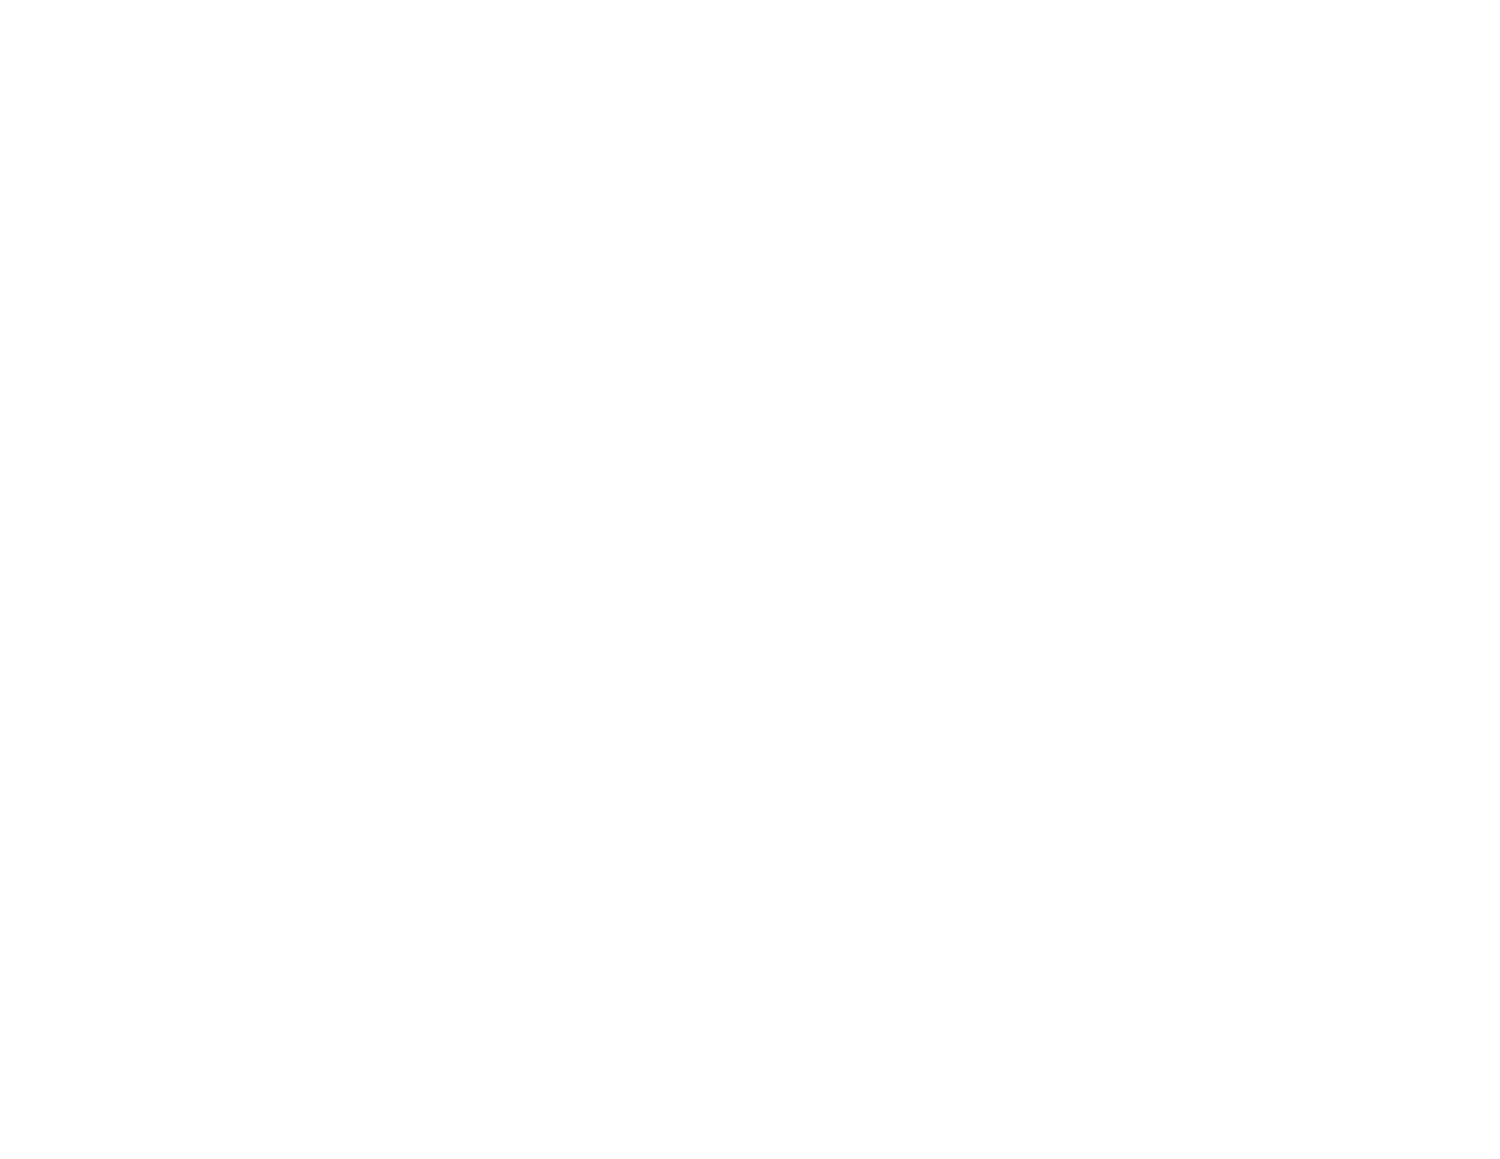 Babylon Fish & Clam